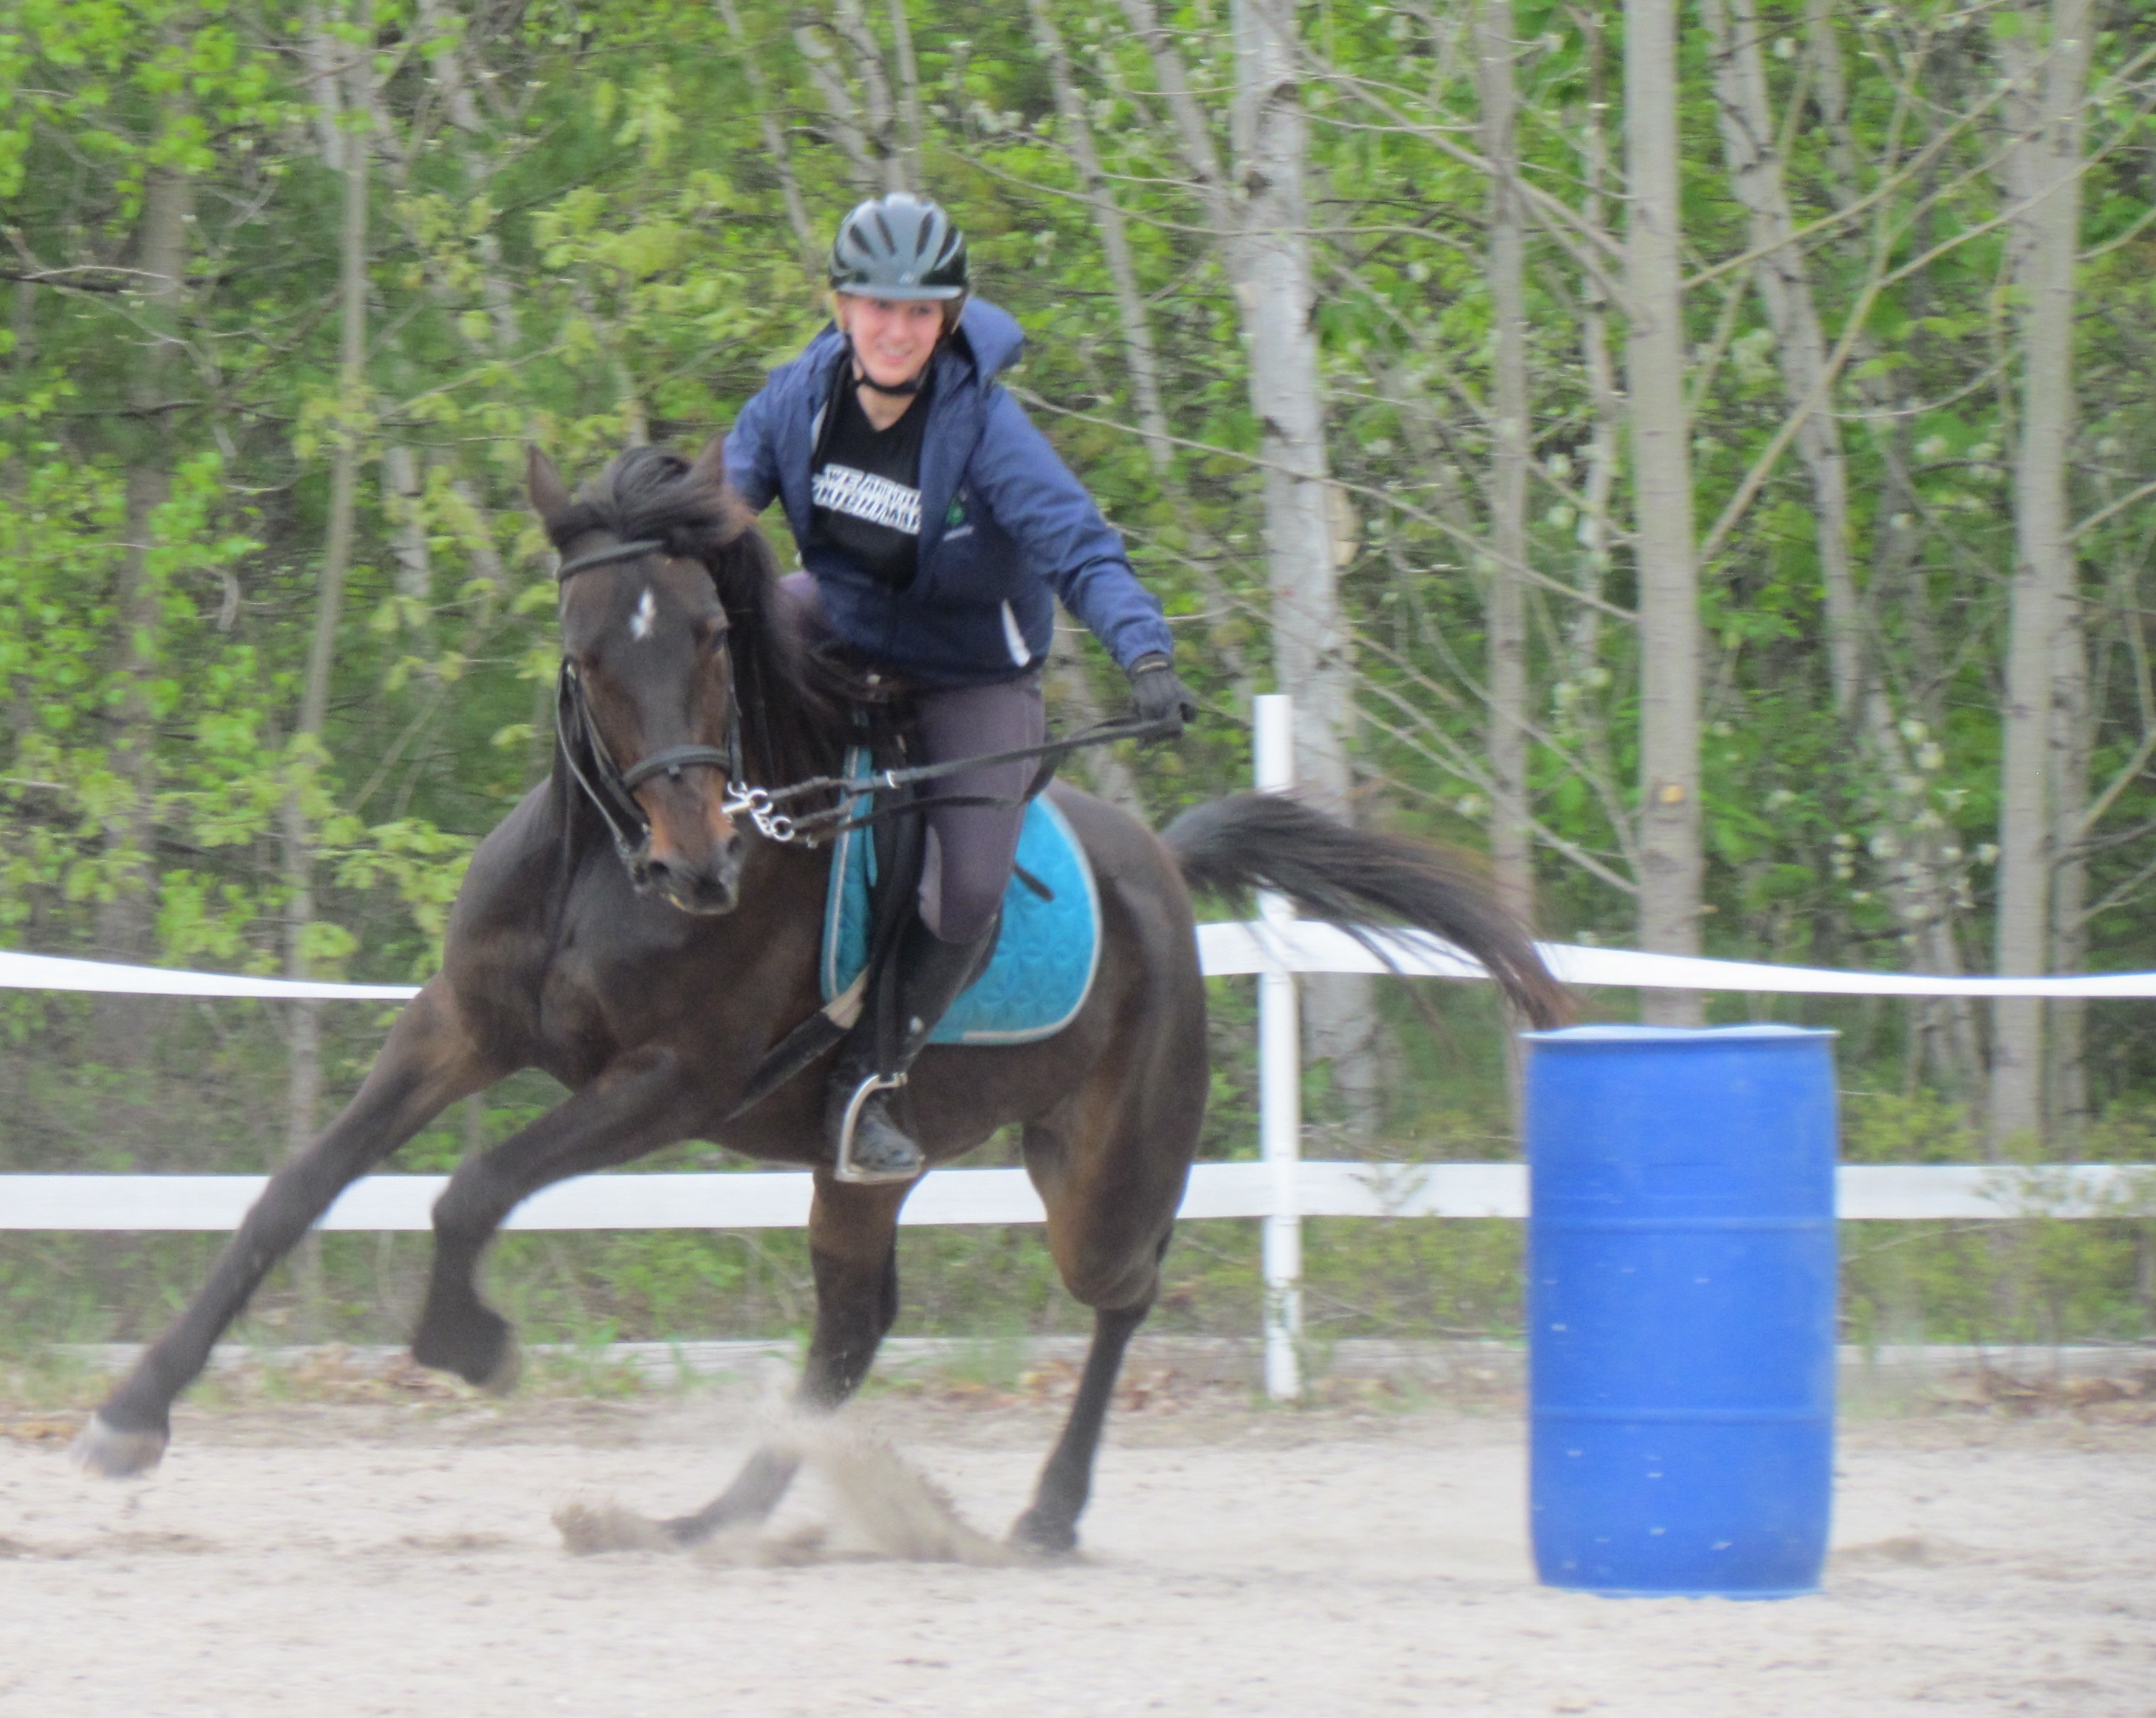 Standardbred, barrel racing.